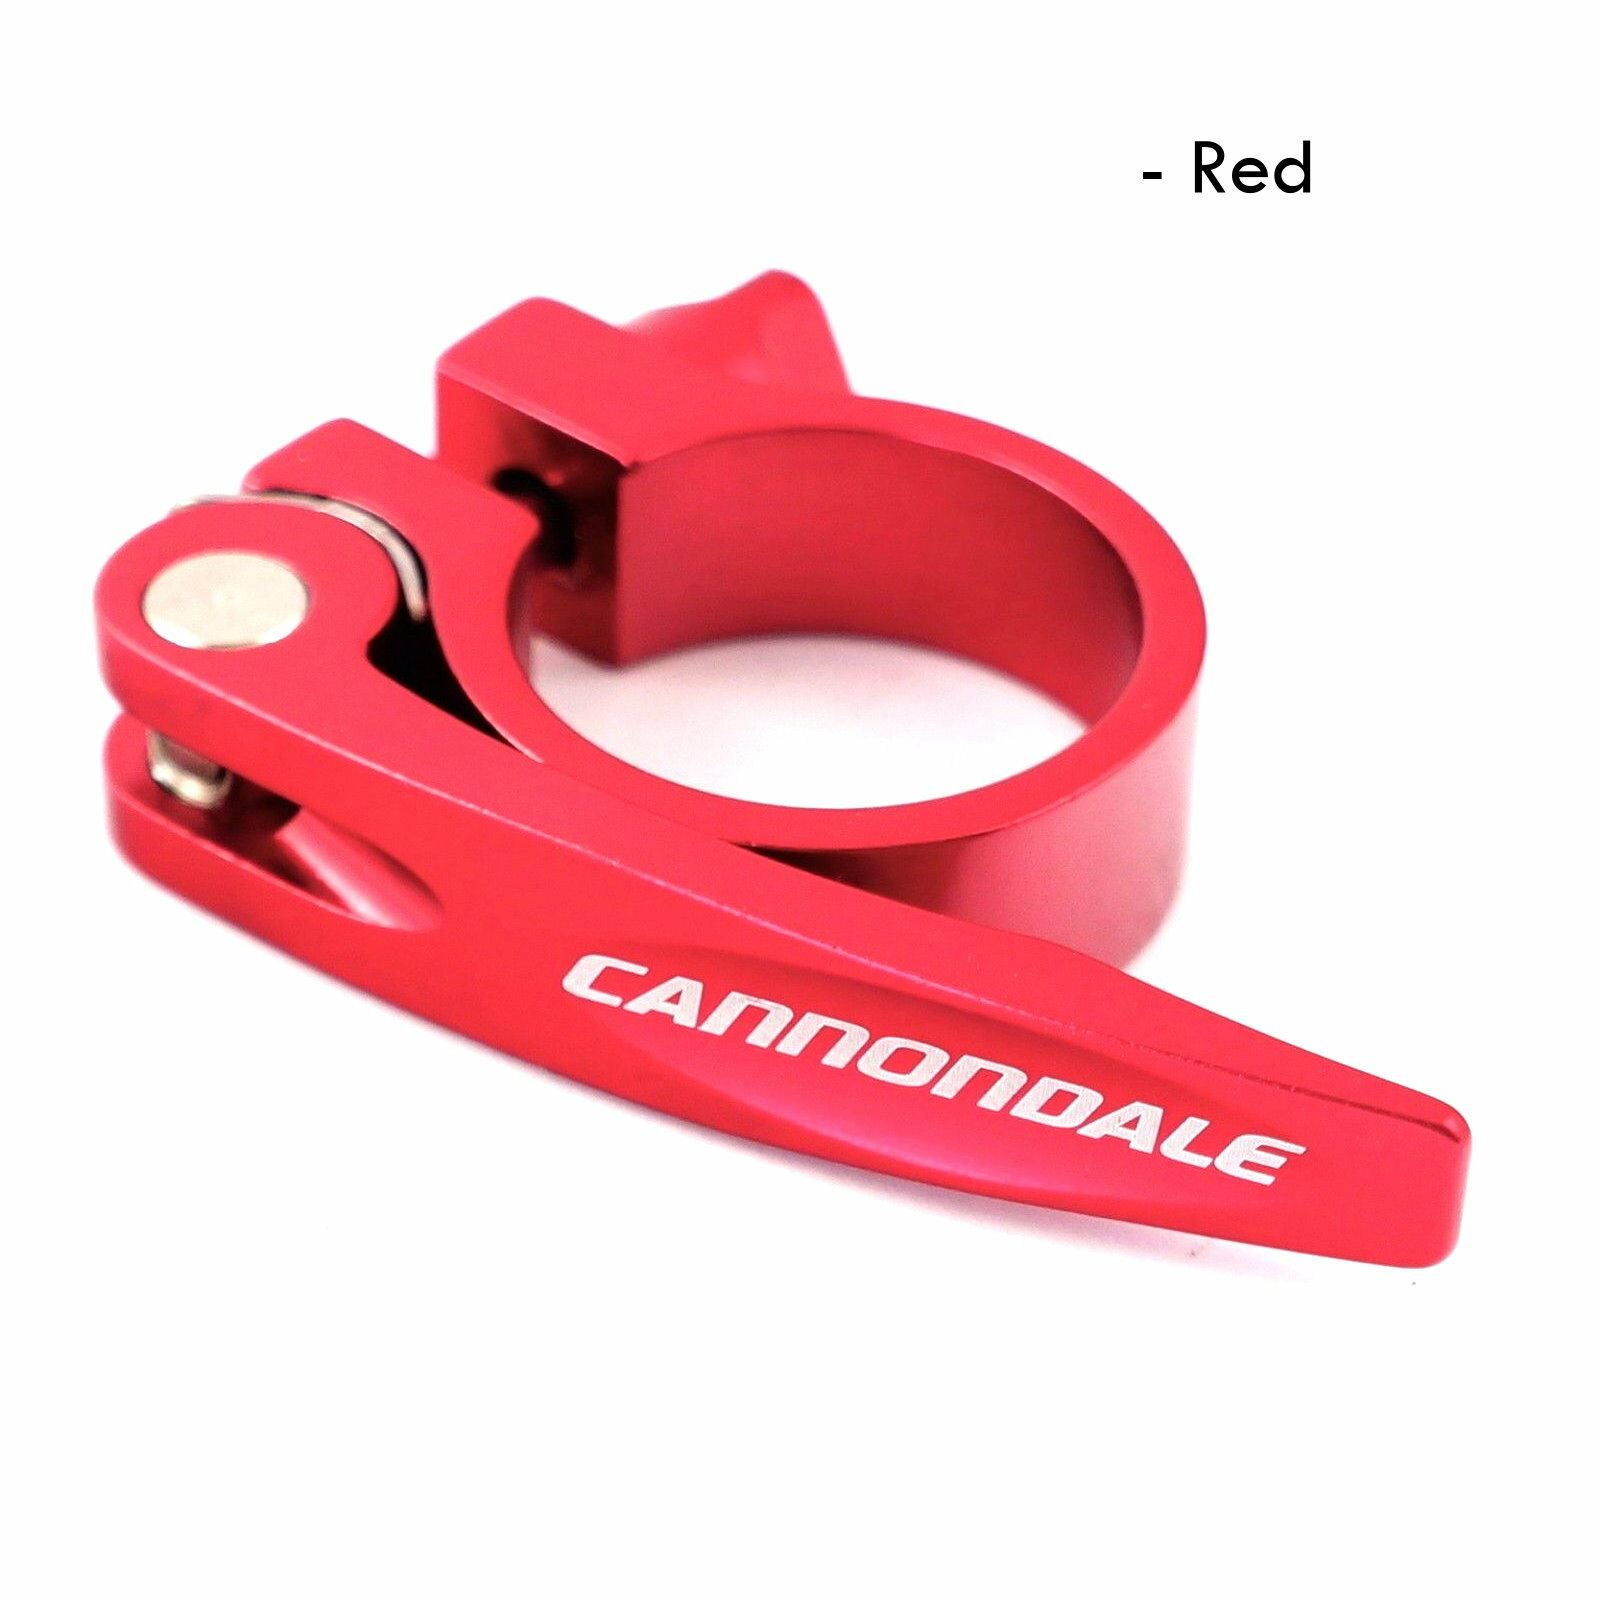 KP170//RED Cannondale Quick Release Seatpost Clamp Seatbinder 34.9mm